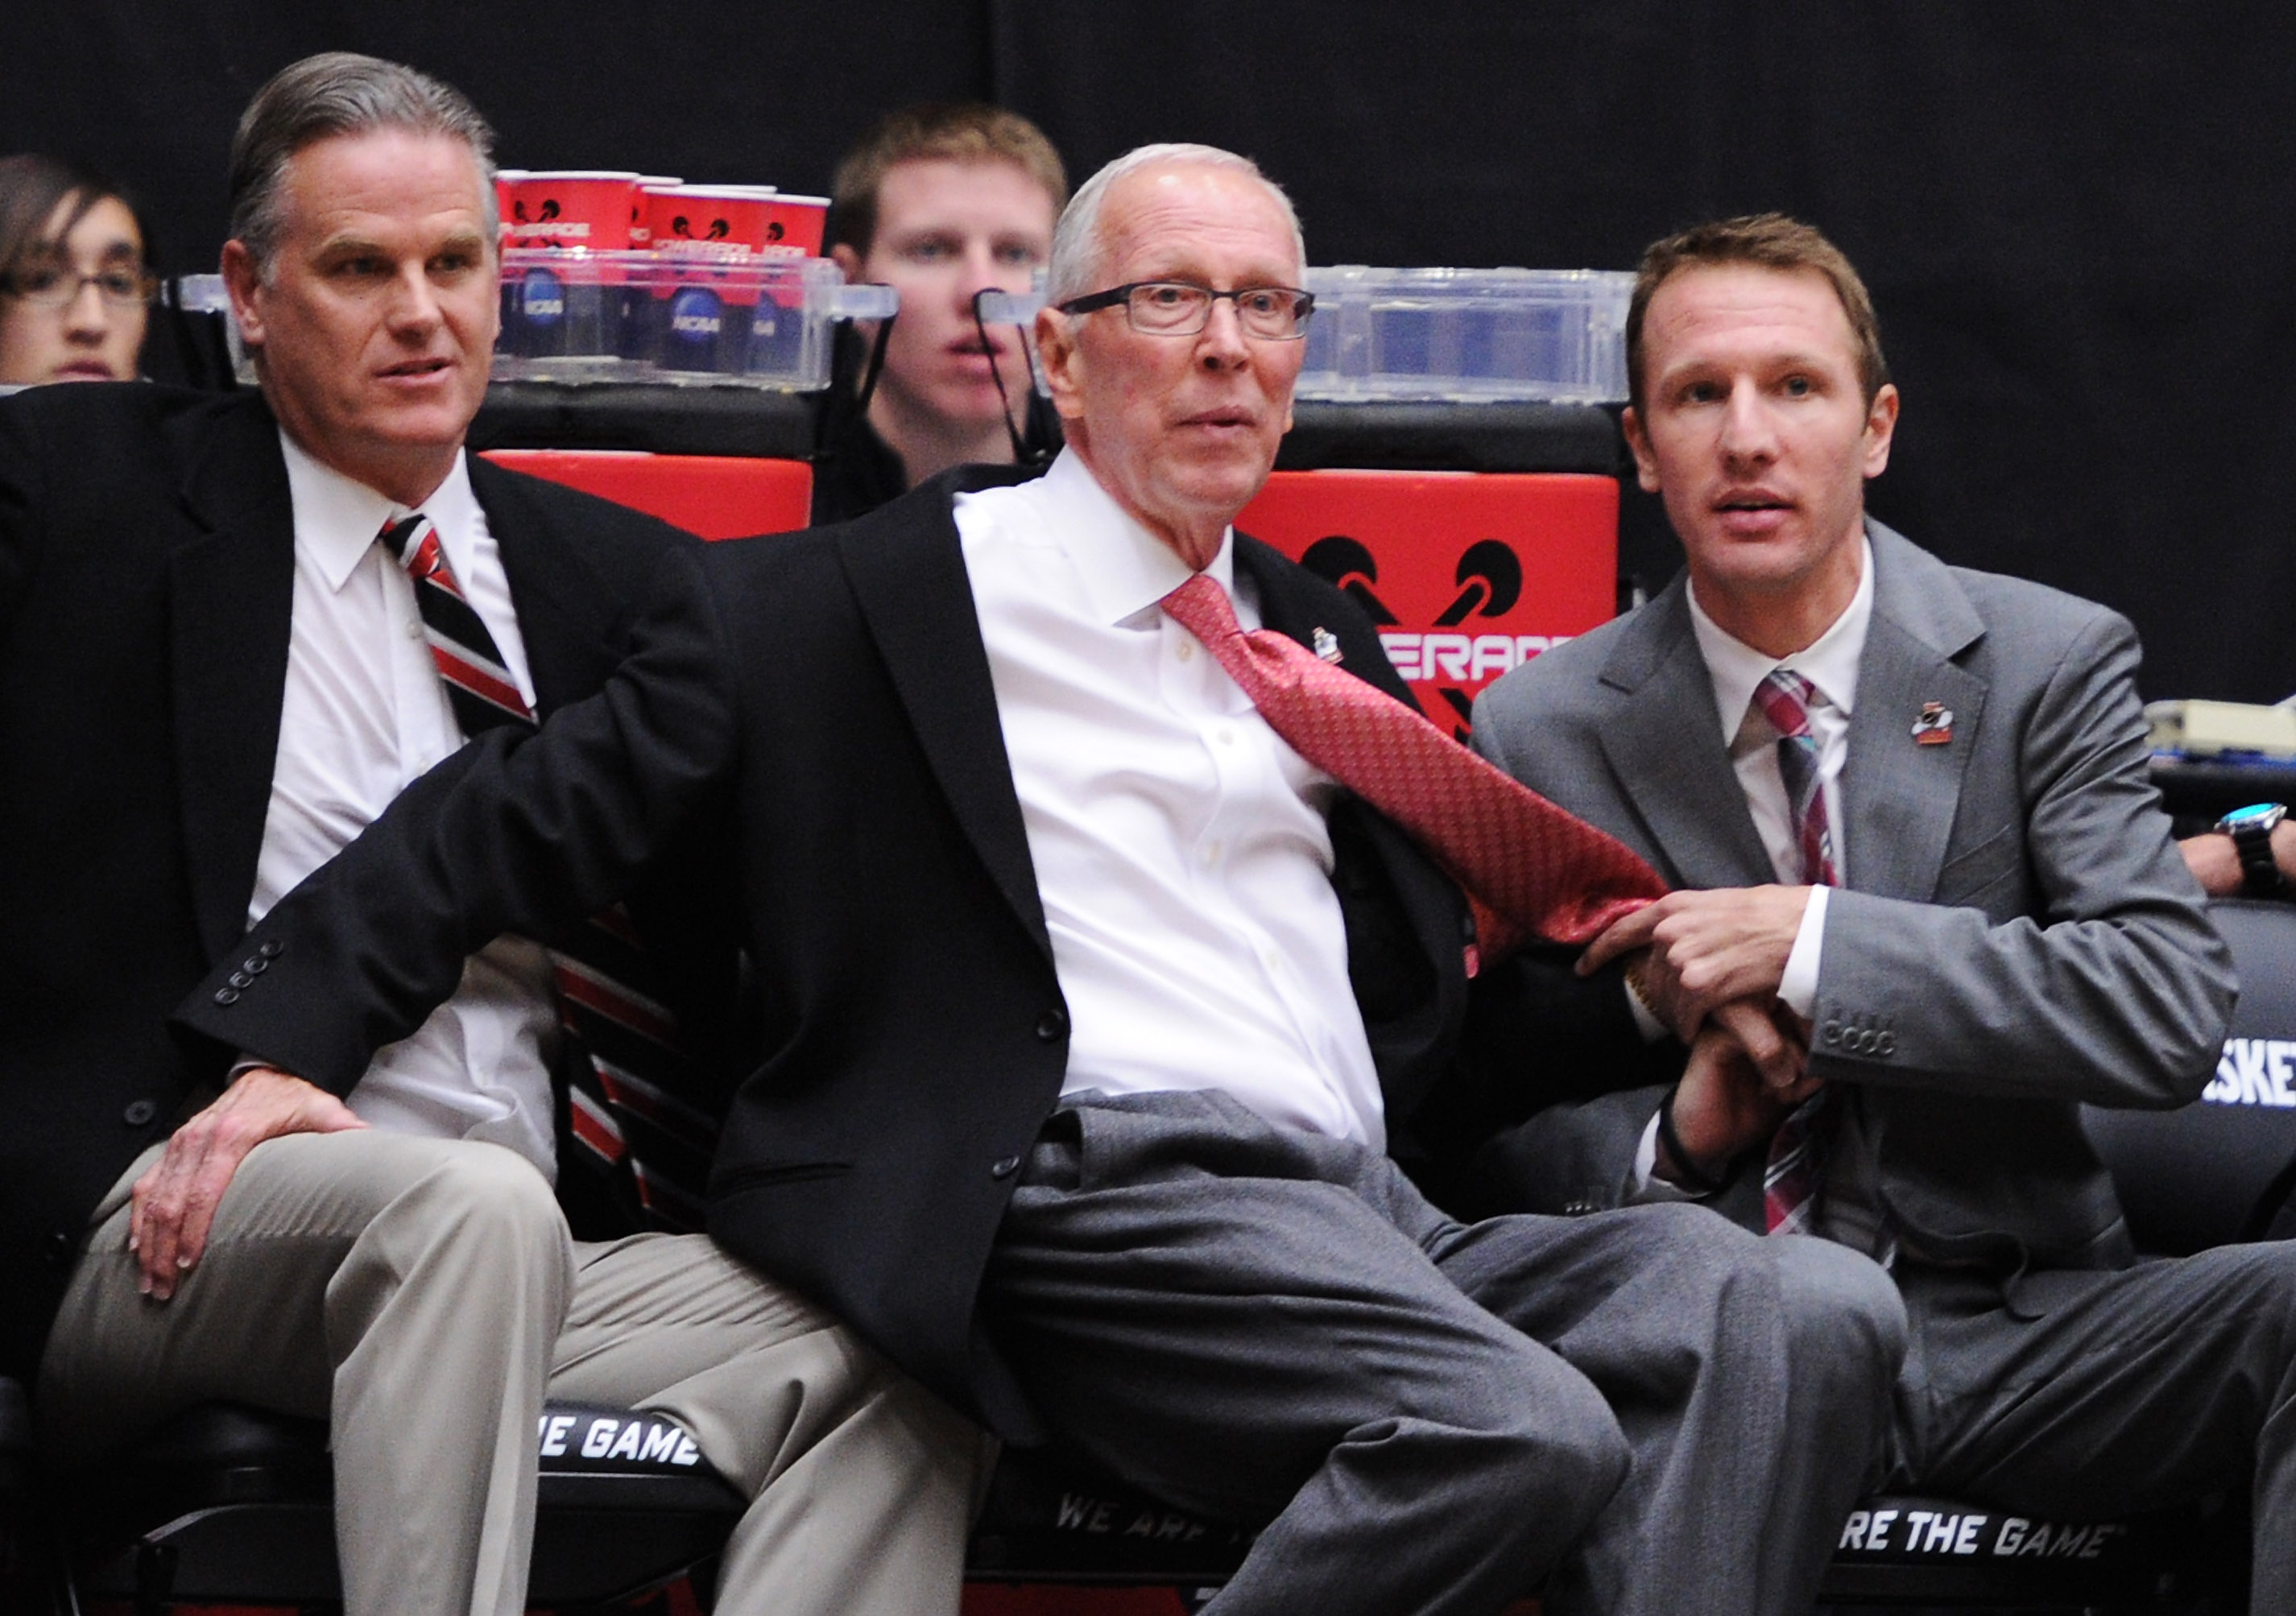 TUCSON, AZ - MARCH 19:  Head coach Steve Fisher (C) of the San Diego State Aztecs stumbles during their game against the Temple Owls during the third round of the 2011 NCAA men's basketball tournament at McKale Center on March 19, 2011 in Tucson, Arizona.